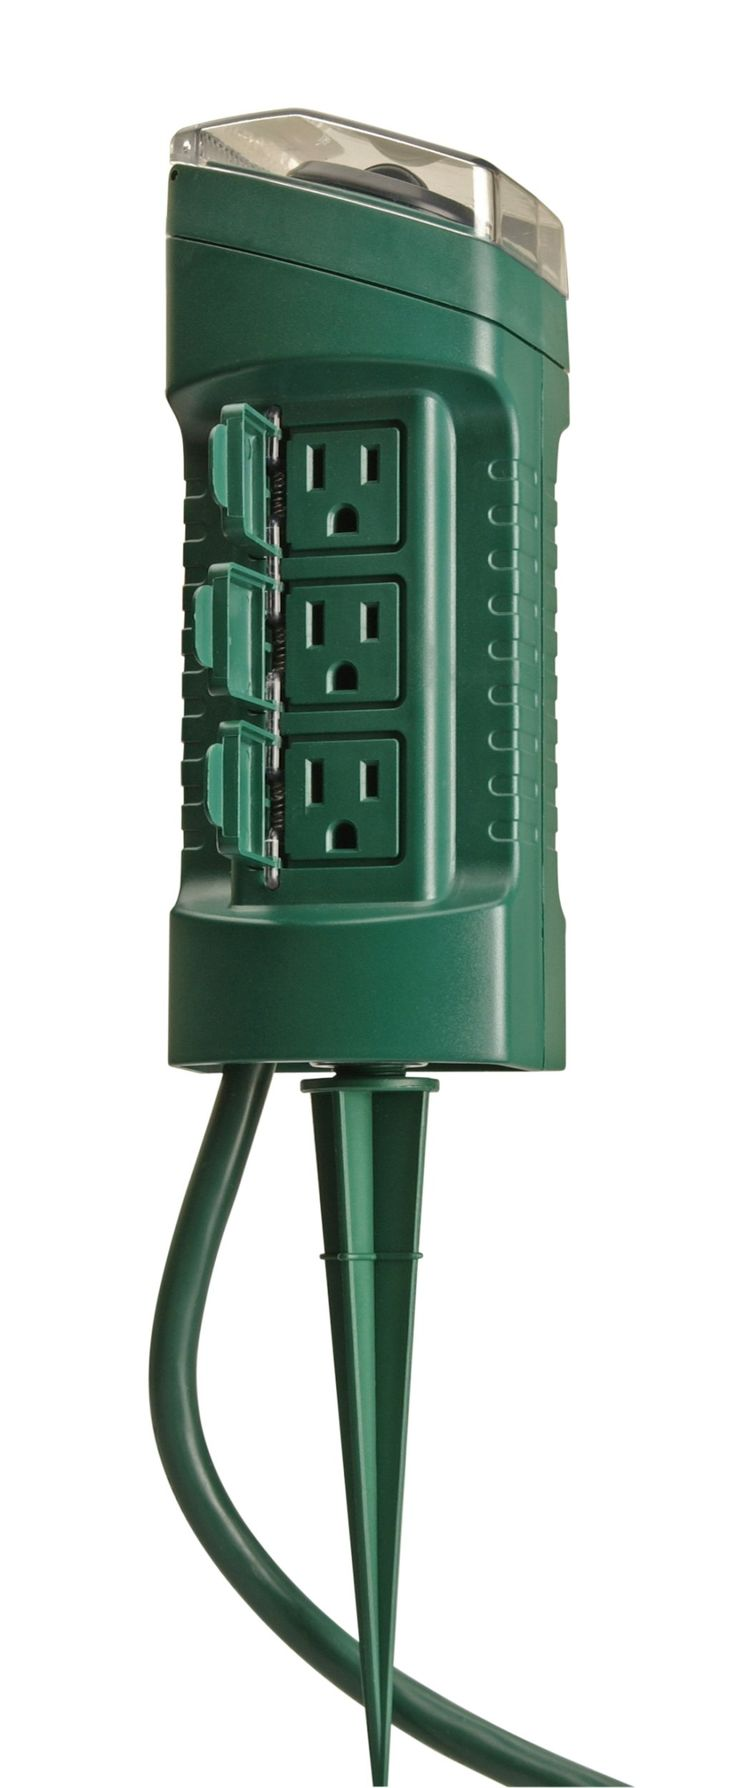 17 Best Ideas About Outdoor Outlet On Pinterest Party Outlet Electrical Ou